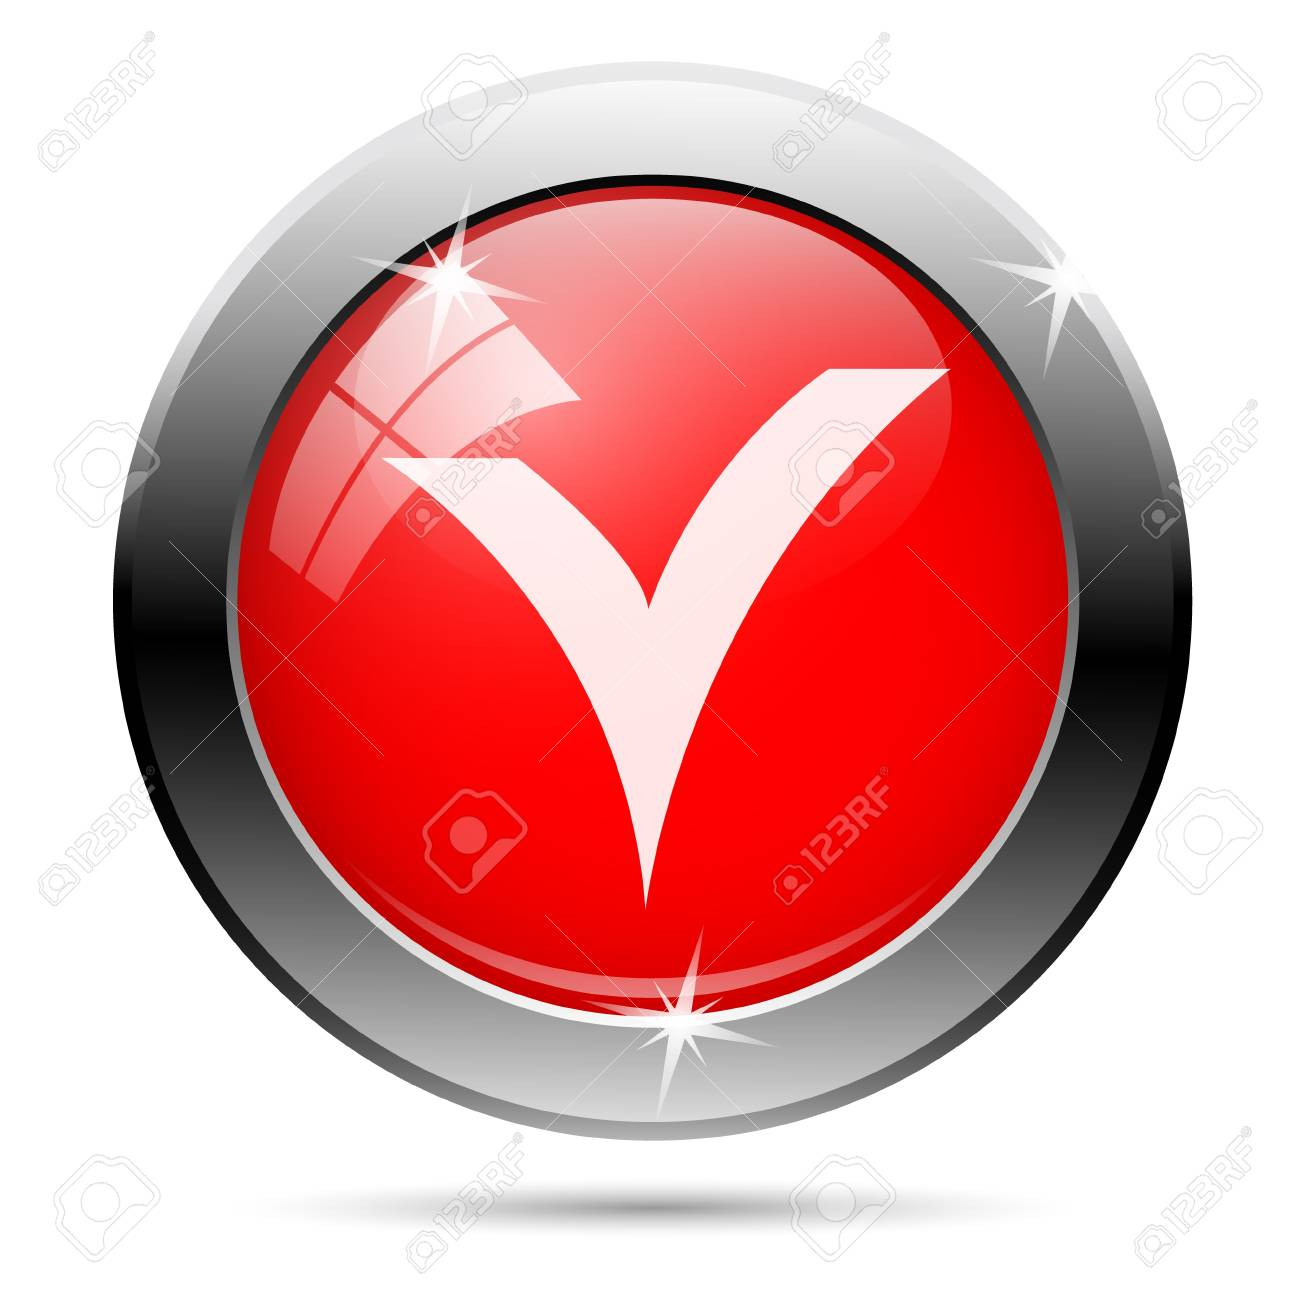 Checked icon with white on red background Stock Photo - 19492042